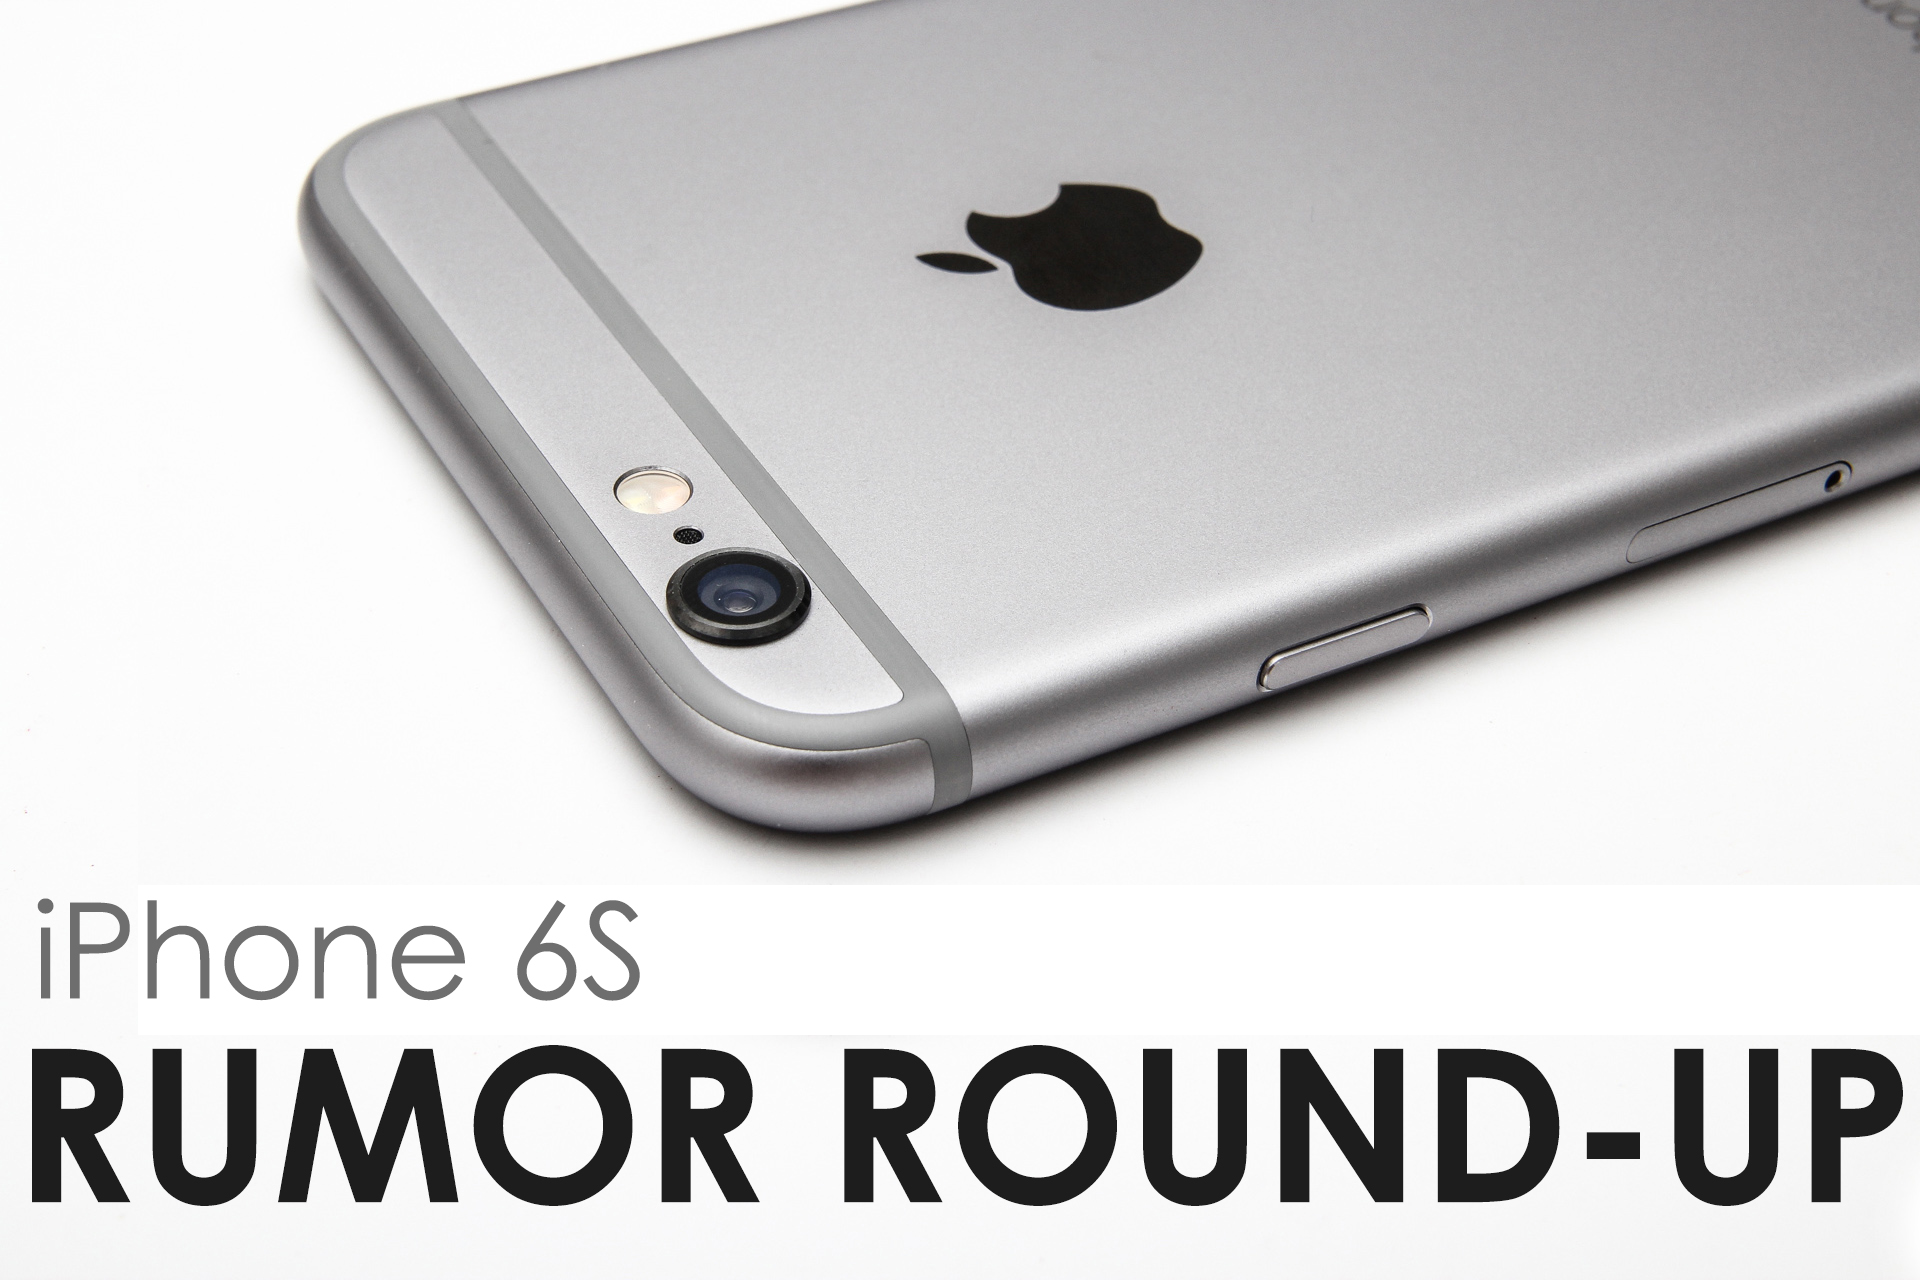 iphone 6s rumor round up